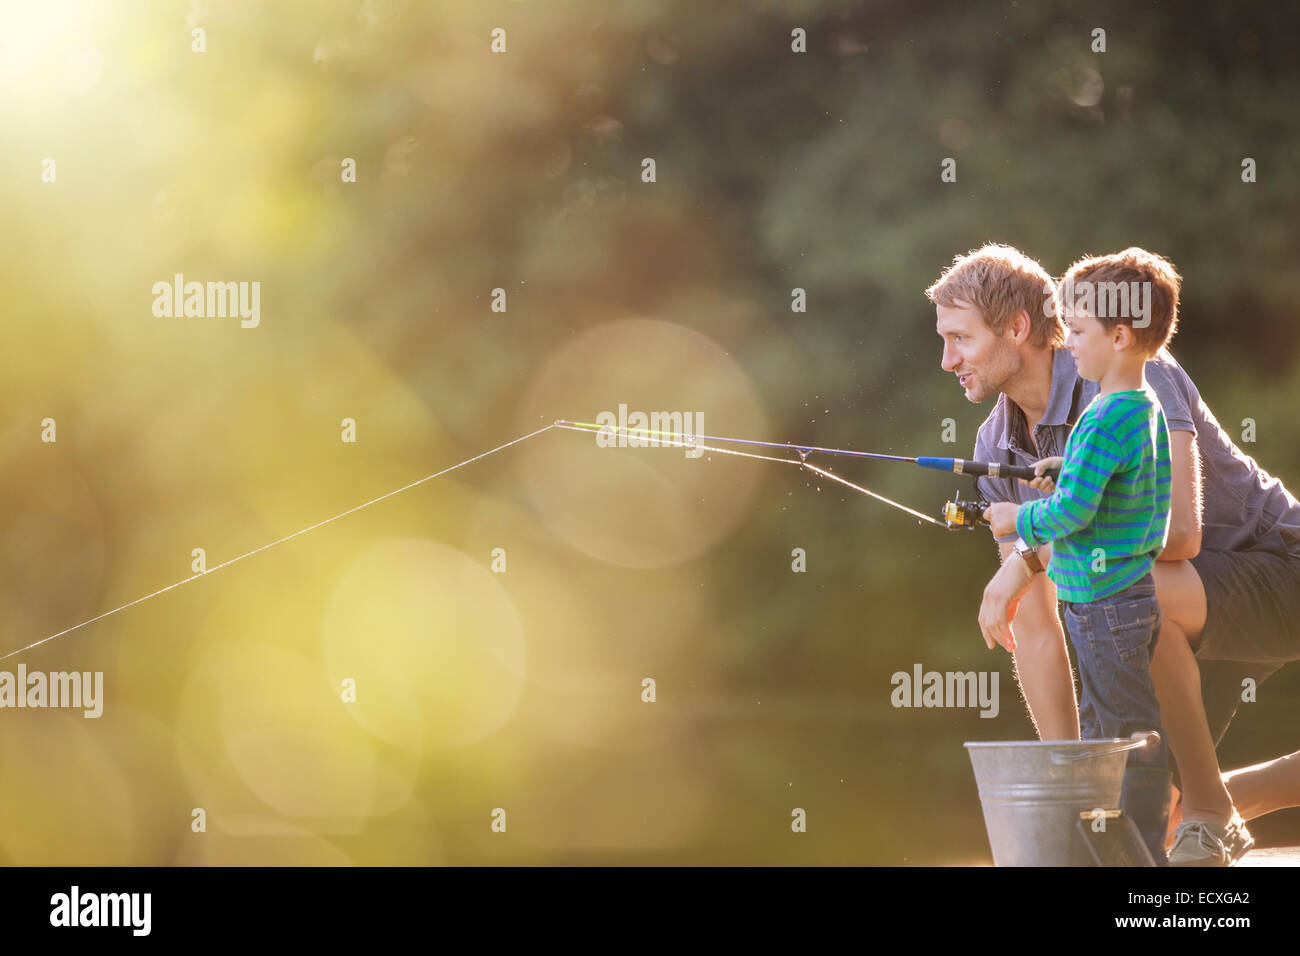 Father and son fishing in lake - Stock Image